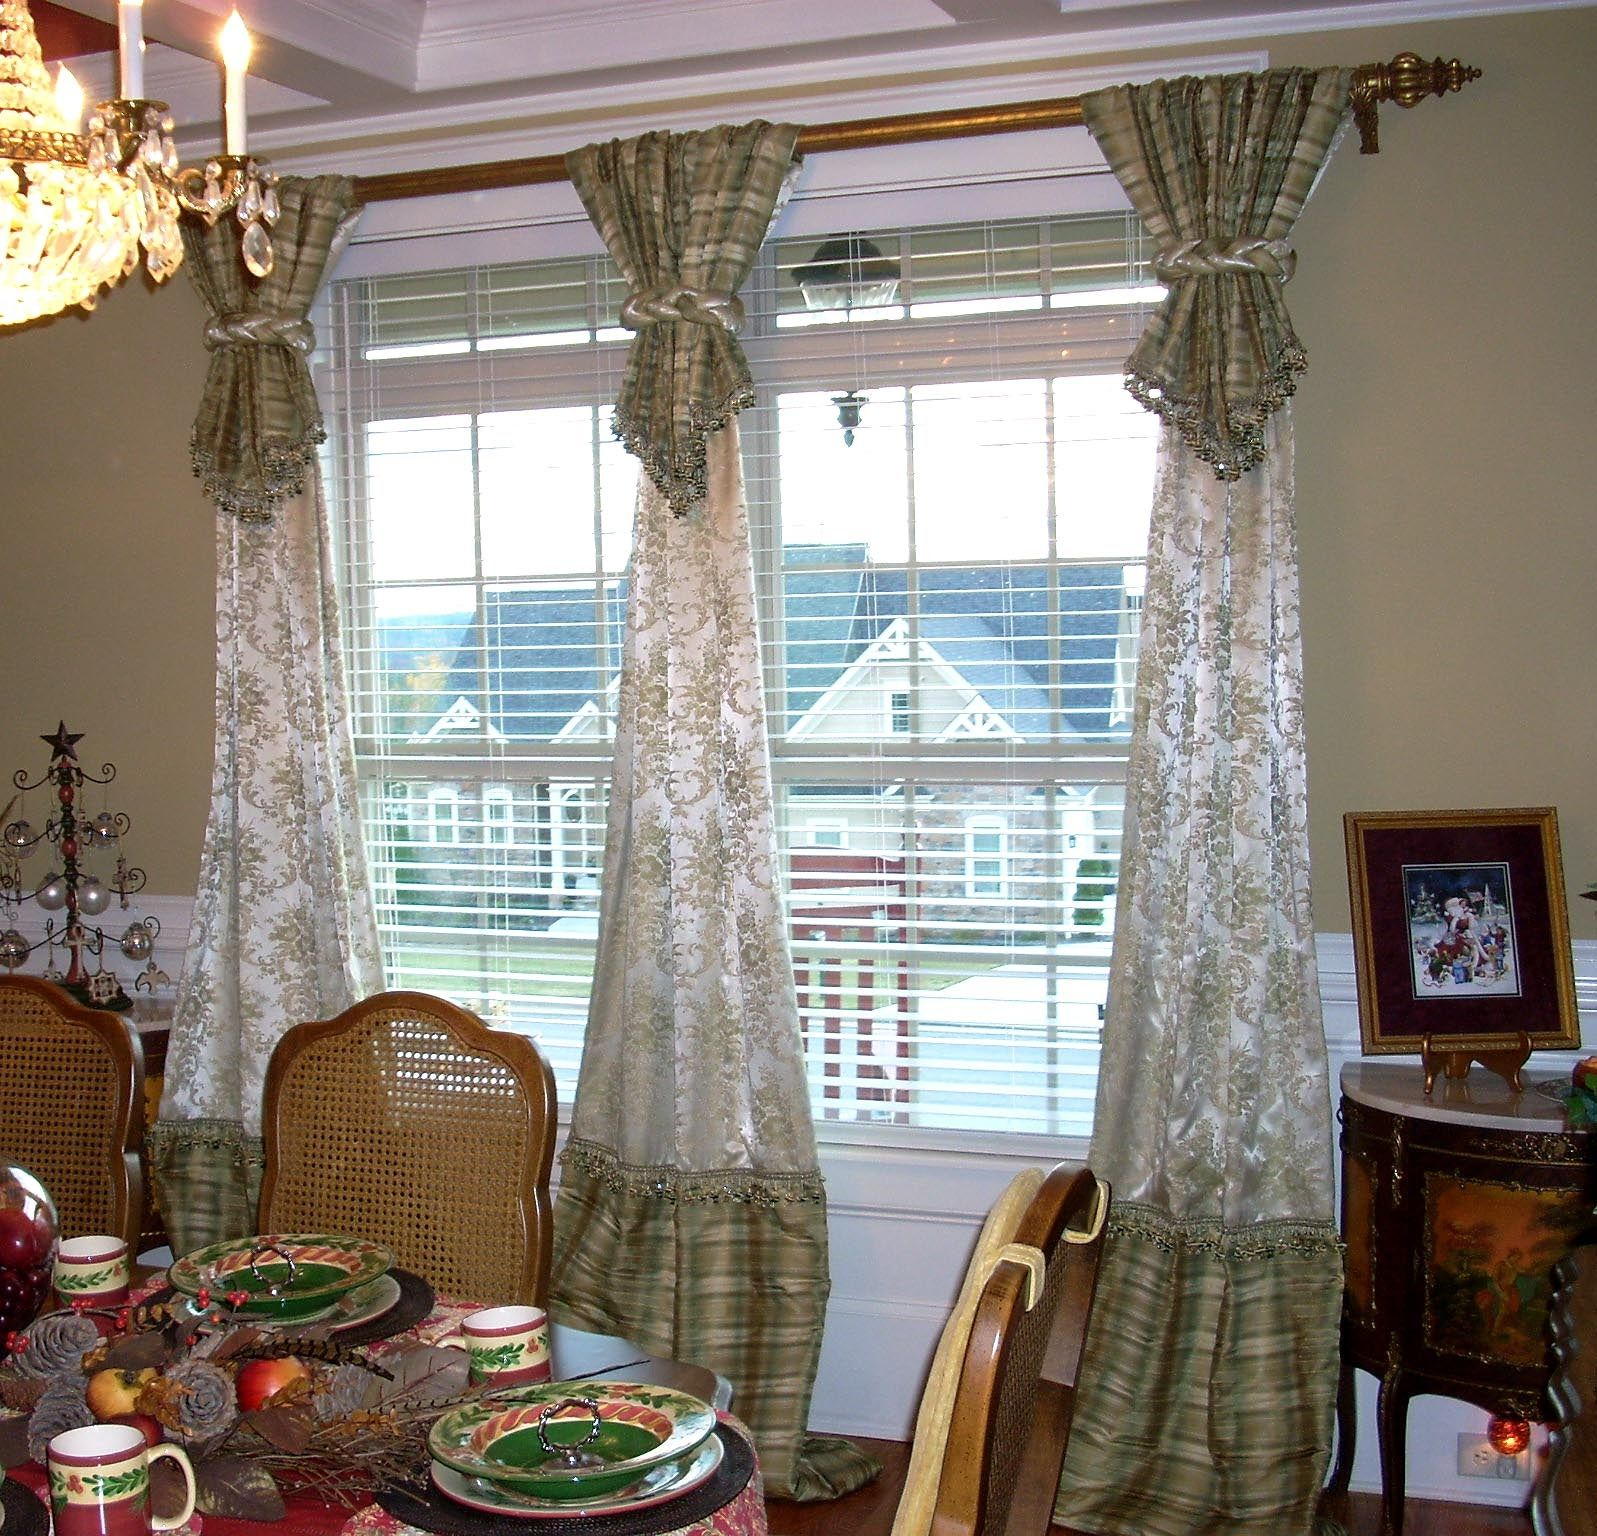 Dining Room Window Valances: Dining Room Drapes Design Ideas Breathtaking Dining Room